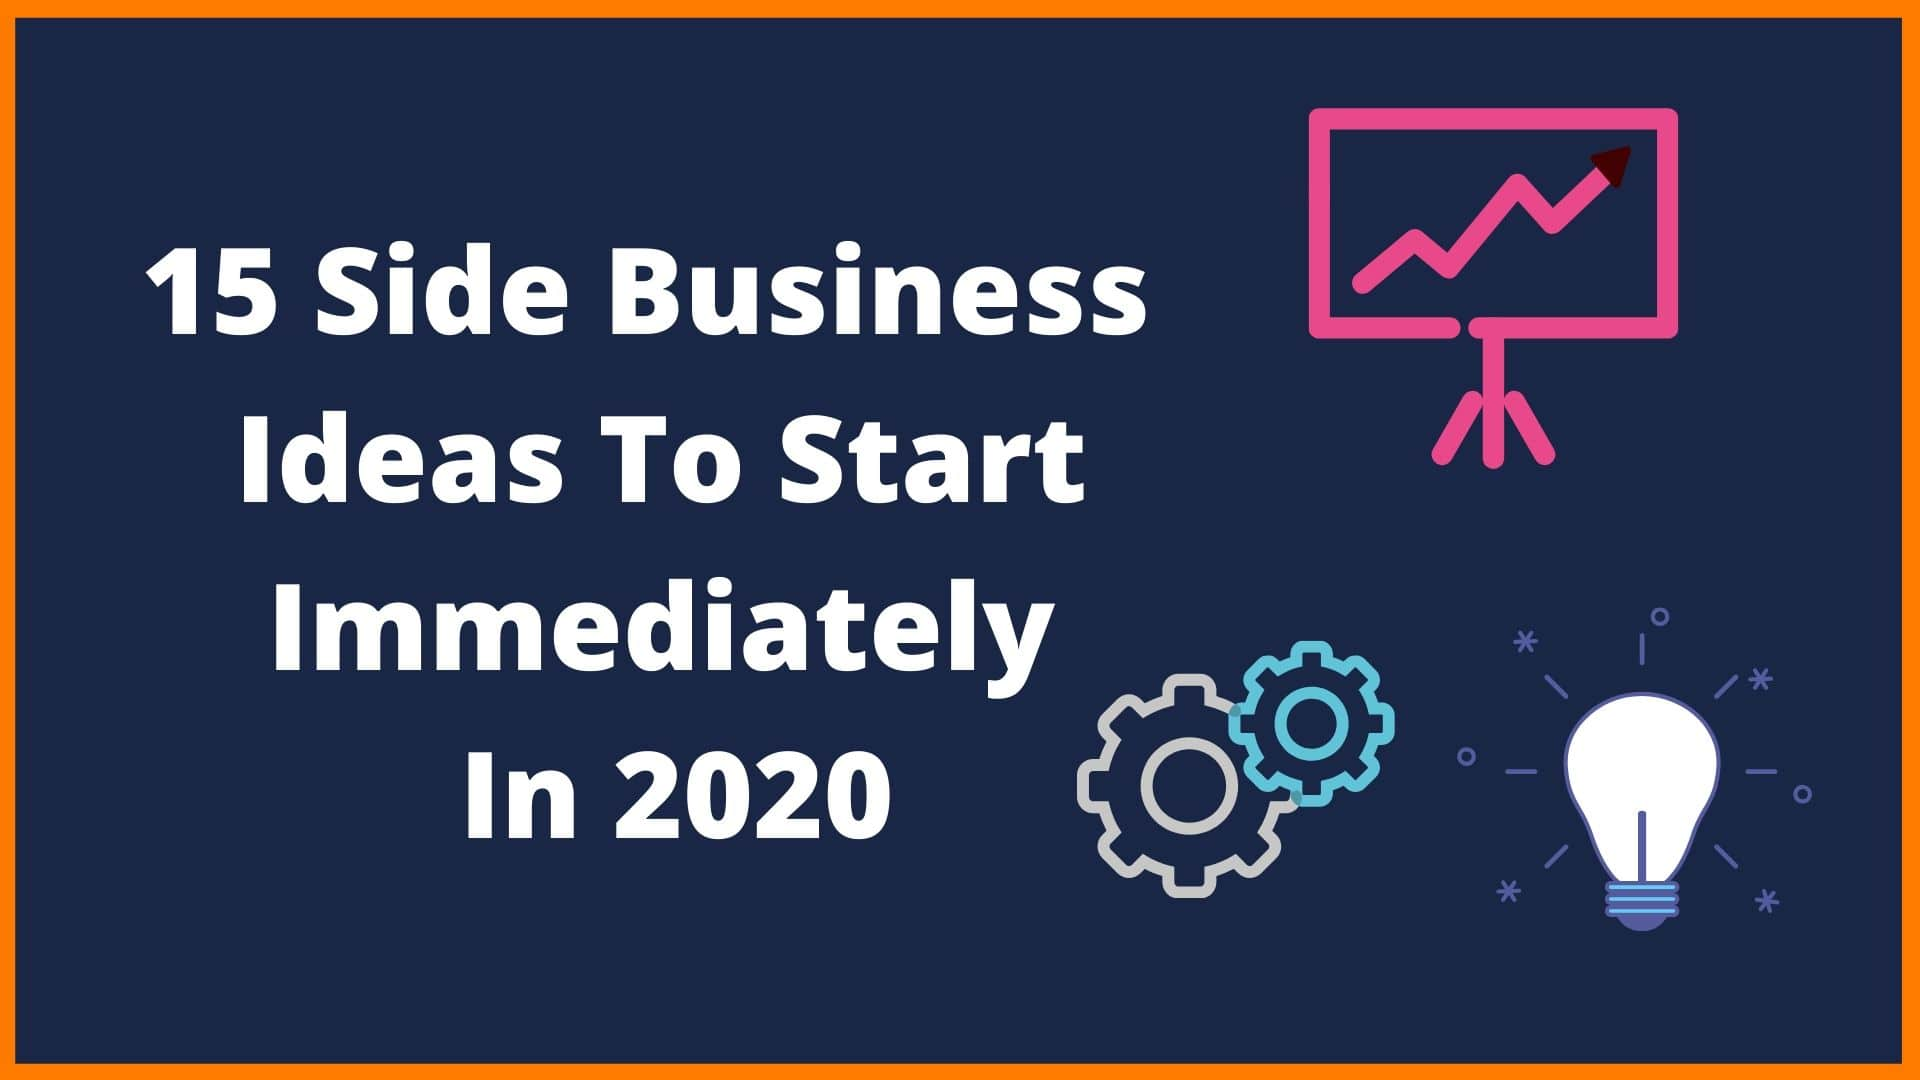 15 Side Business Ideas You Should Know About [2020]